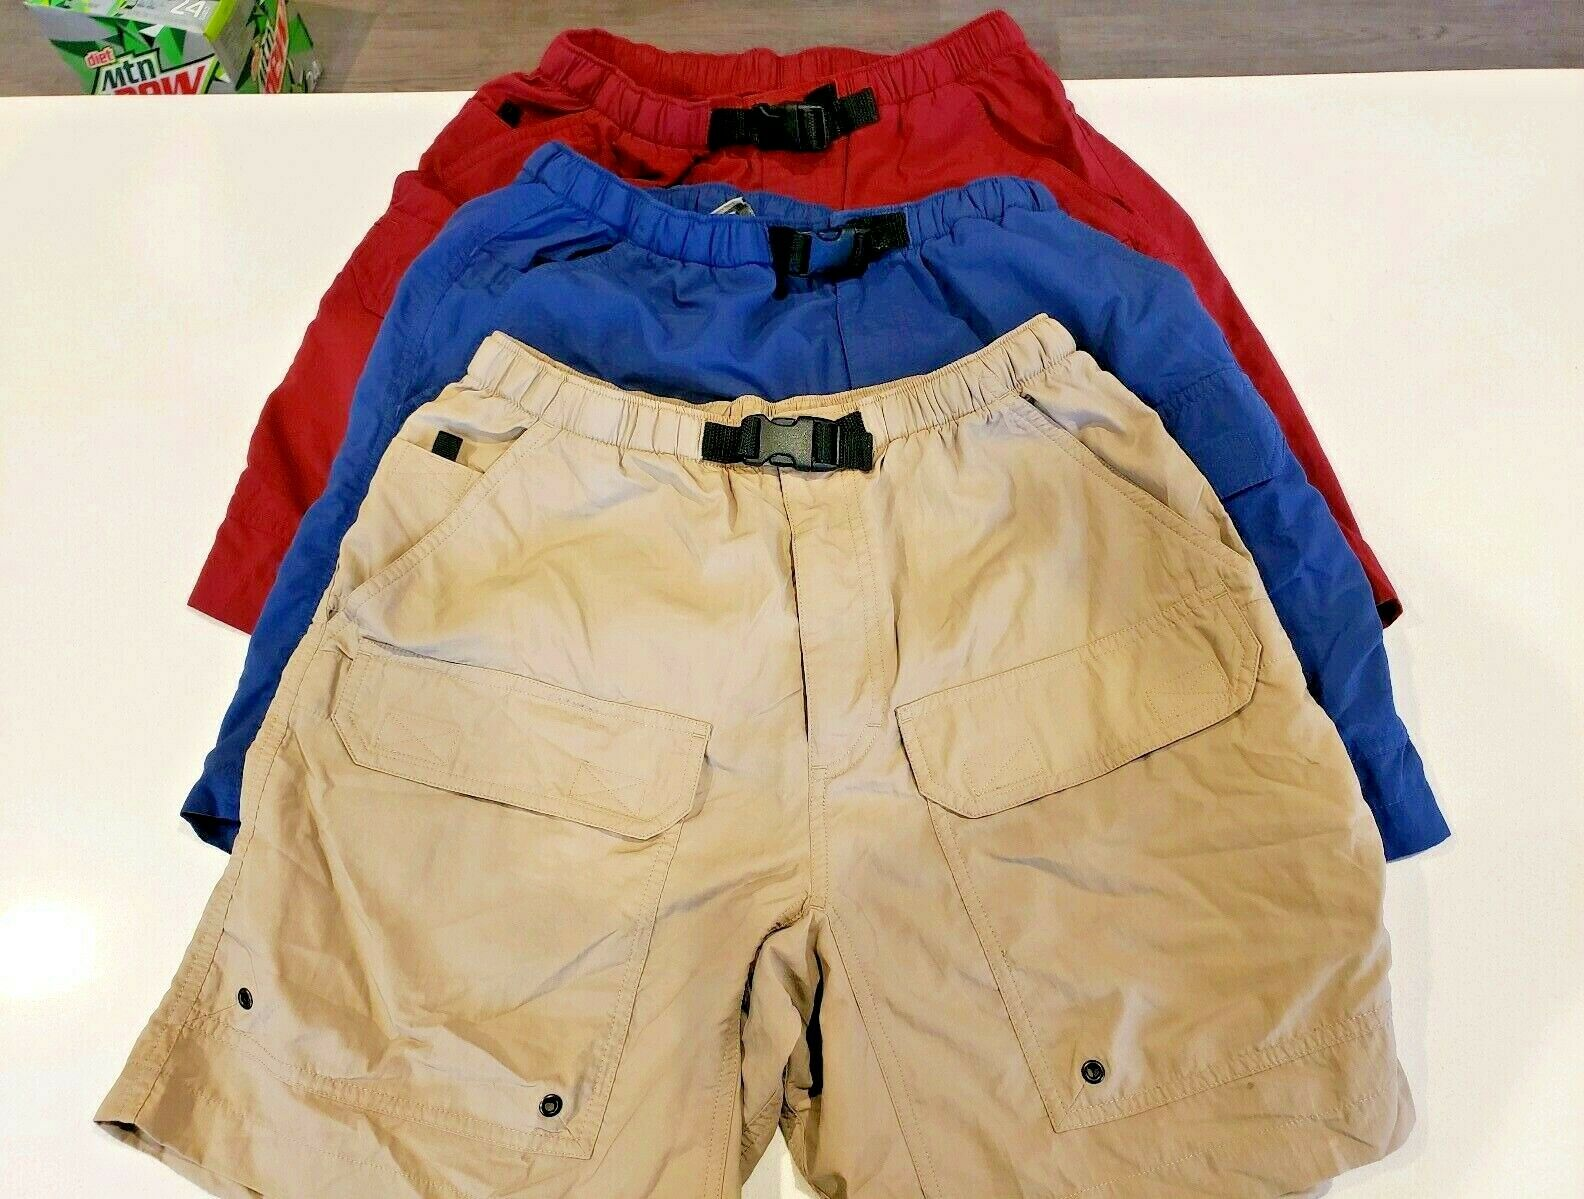 Men's EMS  Nylon Cargo Hiking Shorts Tan Red bluee Size Small Lot of 3